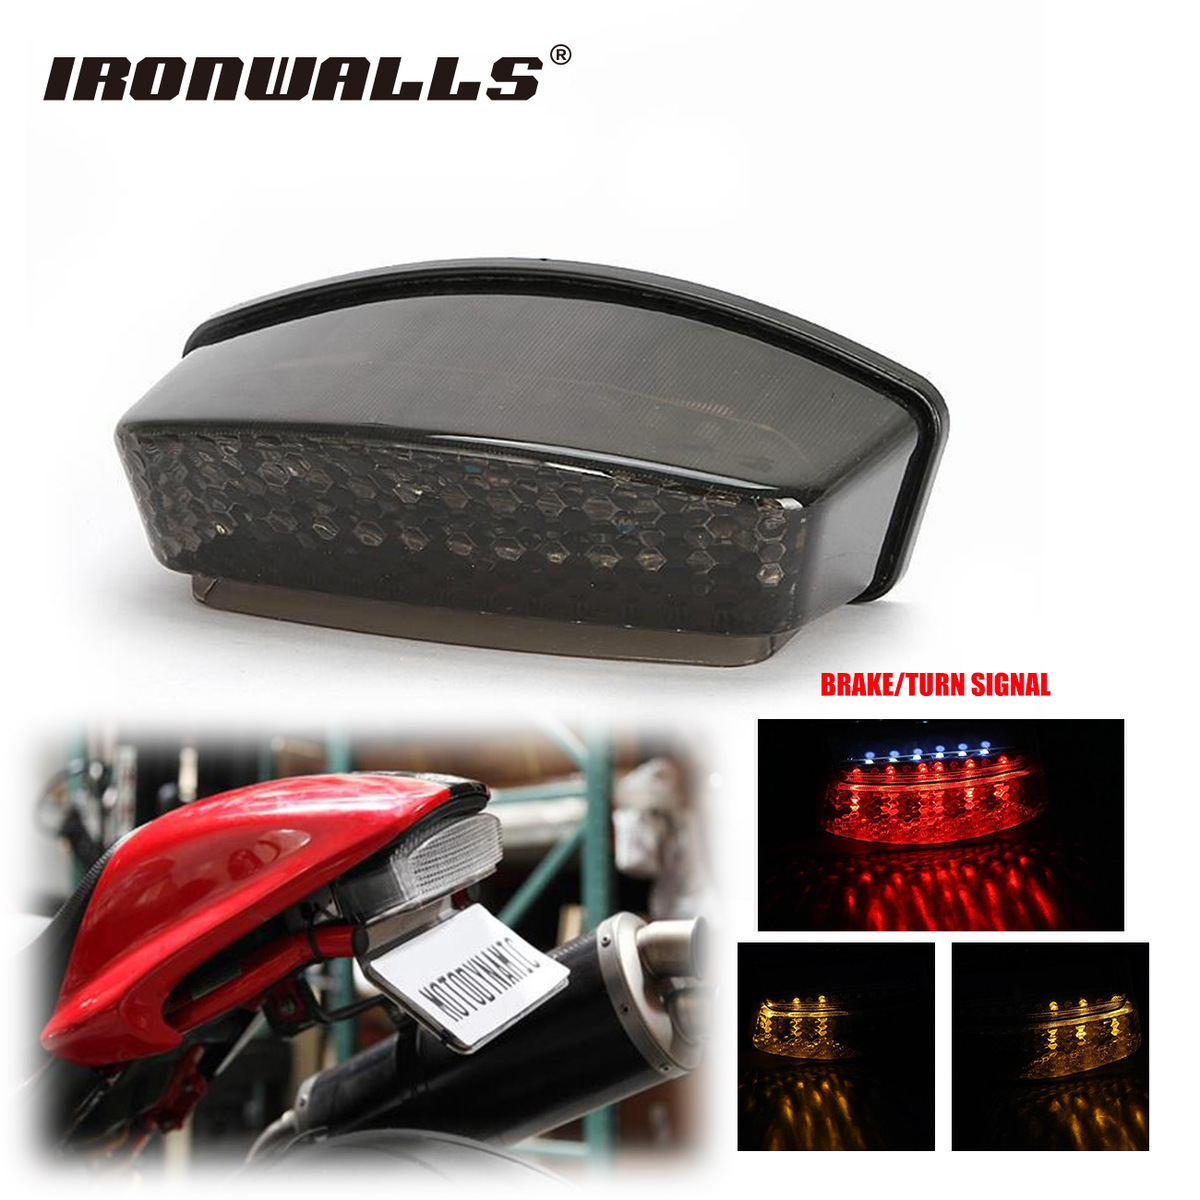 Ironwalls Motorcycle LED Tail Light Tailight Running Brake Turn Signal 12V For Ducati Monster 1000 695 620 IE 696 S4R S2R Dark 22mm 7 8 motorcycle aluminum handlebar grips bar ends sliders for ducati monster 600 dark monster 620 monster 696 monster 750